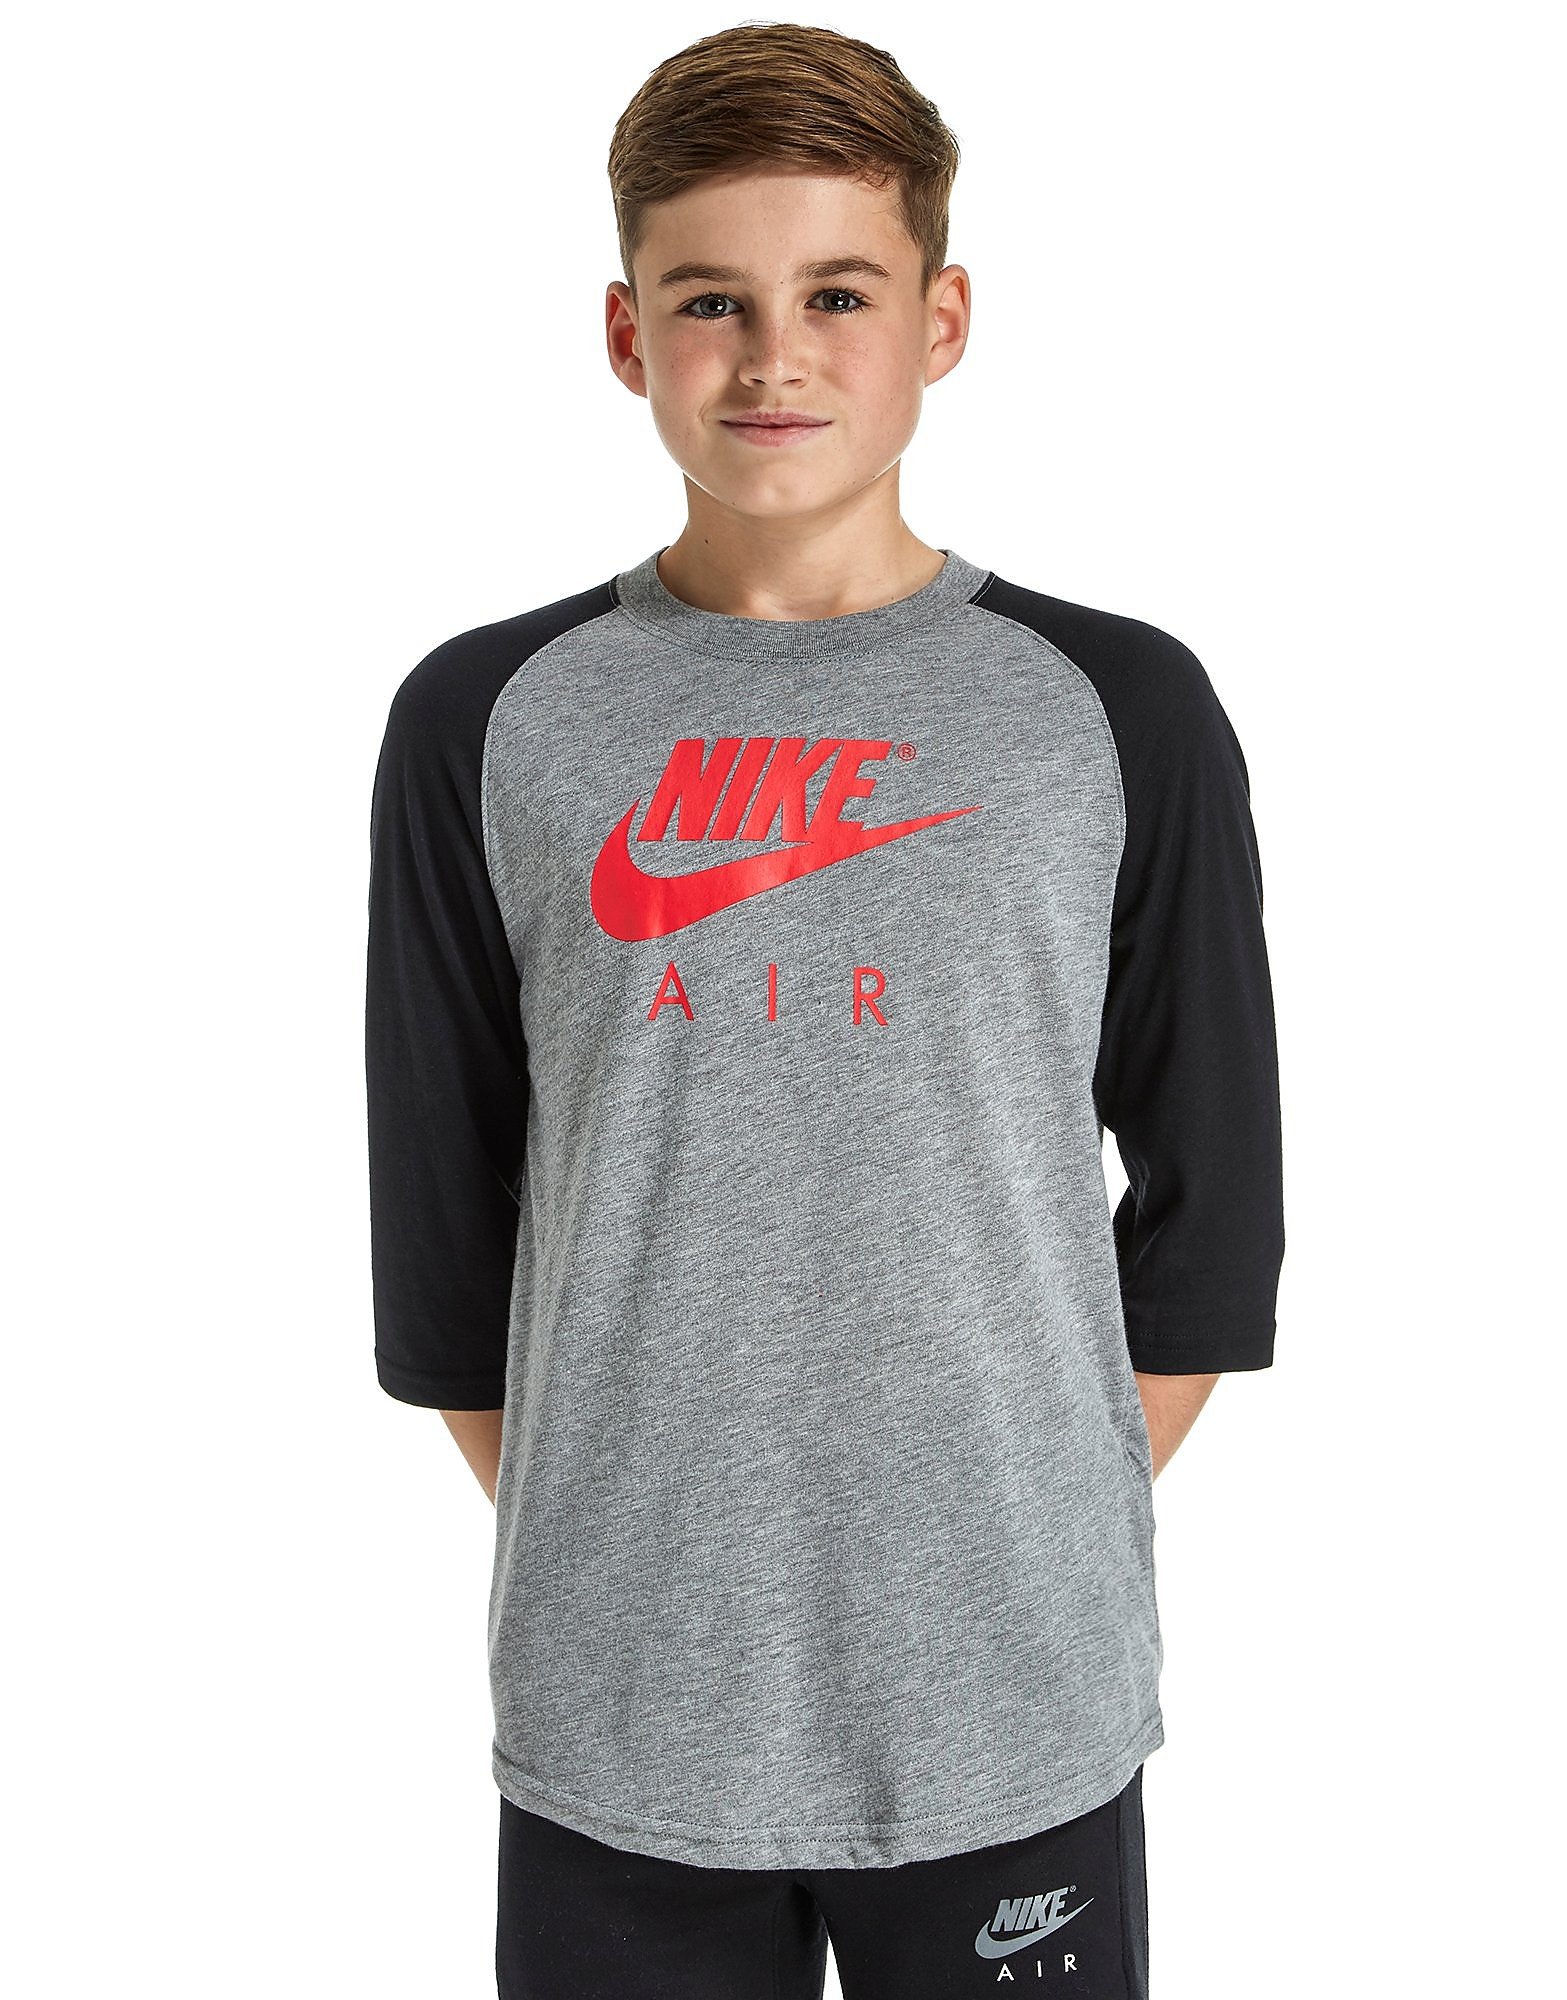 Nike Air ¾ Sleeve T-Shirt Junior